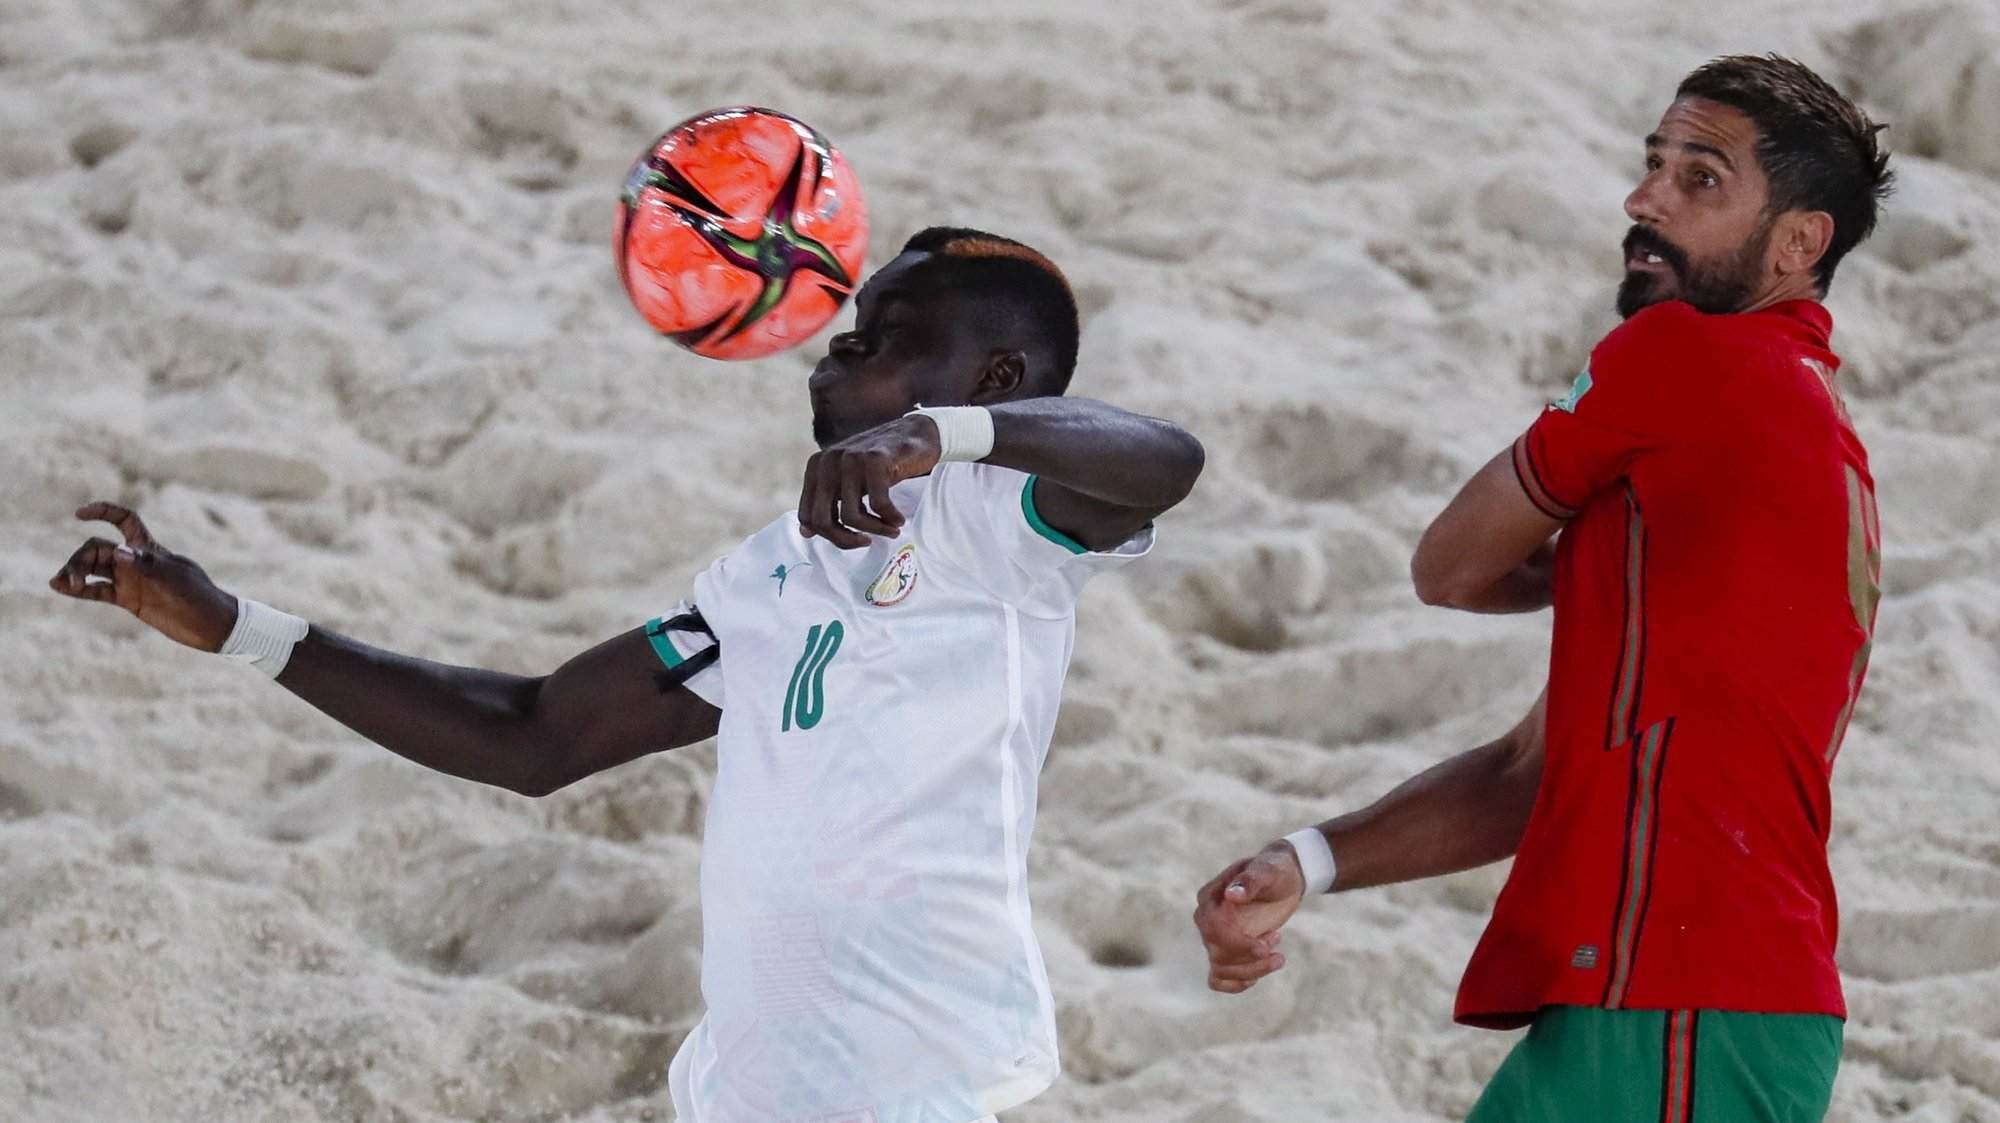 epa09425245 Torres (R) of Portugal in action against Mamour Diagne of Senegal during the FIFA Beach Soccer World Cup 2021 match between Senegal and Portugal at Luzhniki Beach Soccer Stadium in Moscow, Russia 22 August 2021.  EPA/YURI KOCHETKOV